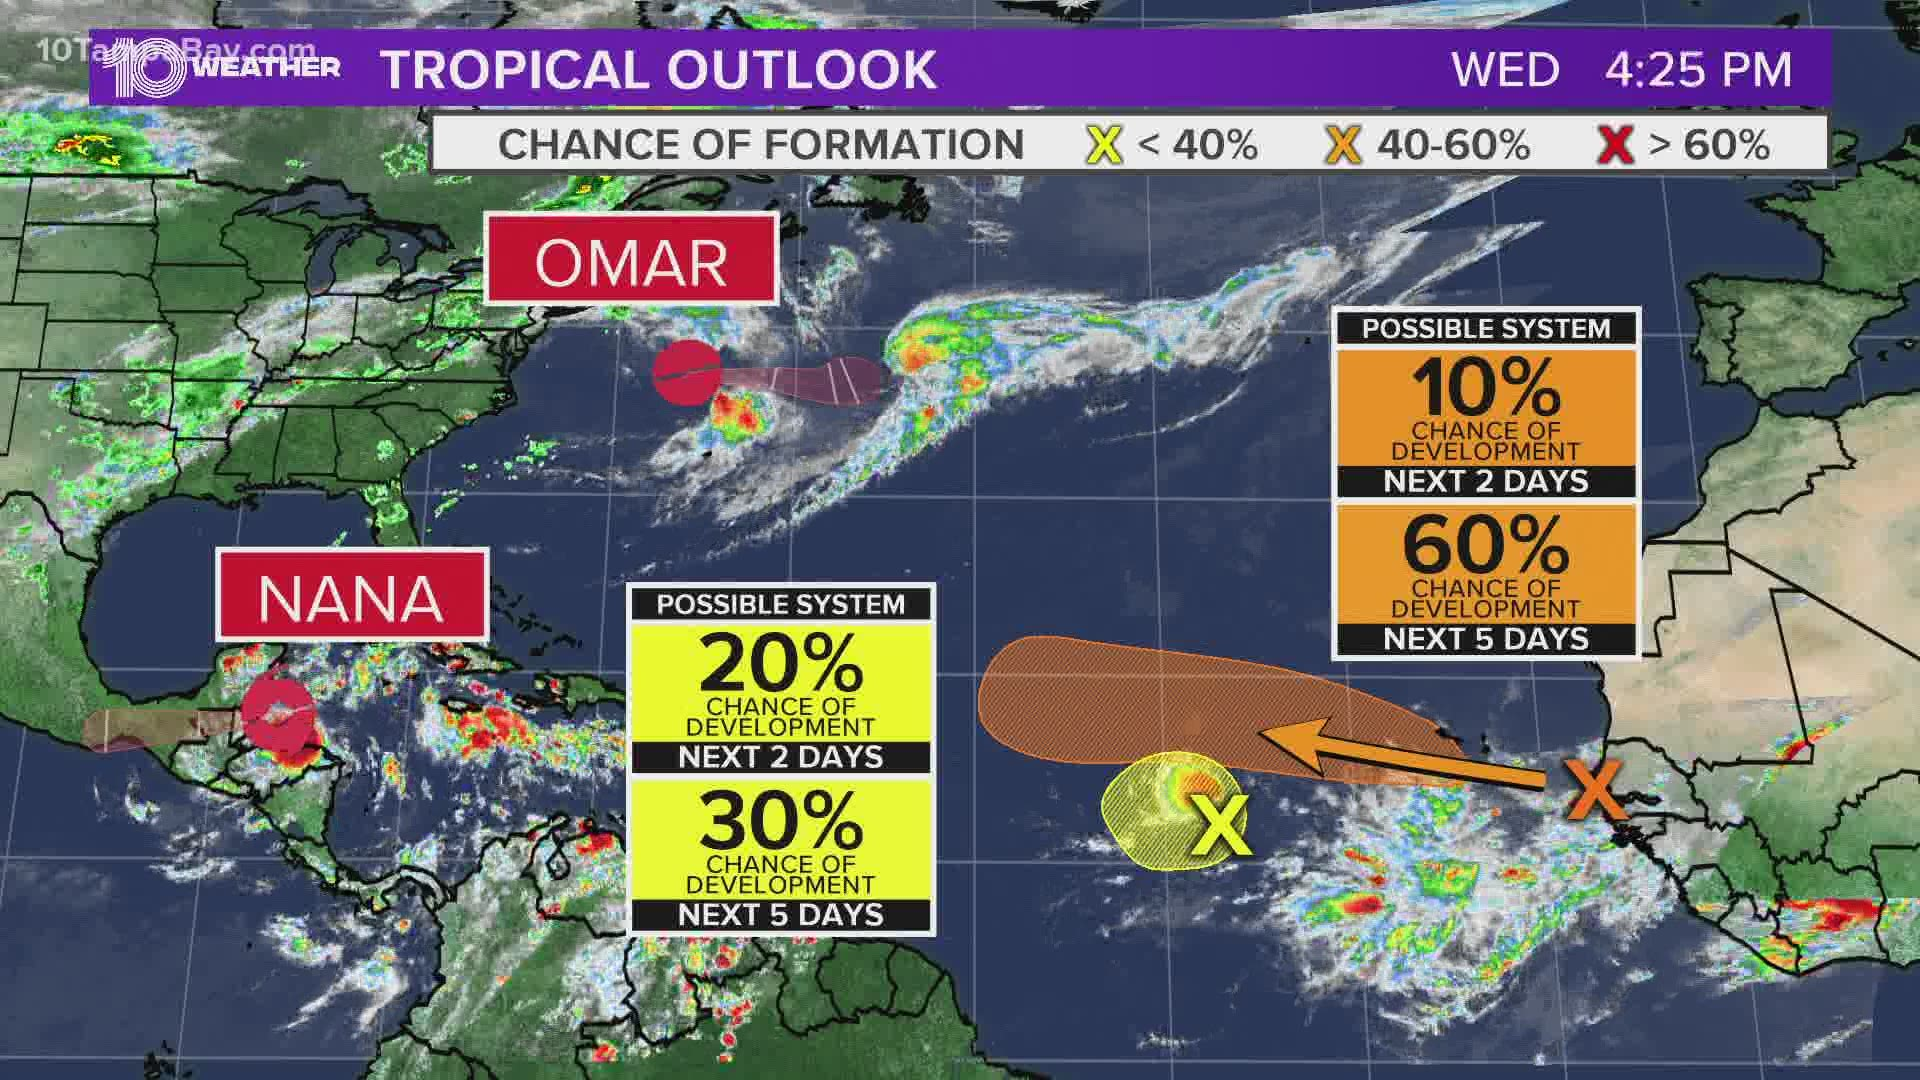 Nhc Tracking 4 Systems In The Tropics Including A Potential Hurricane Wtsp Com